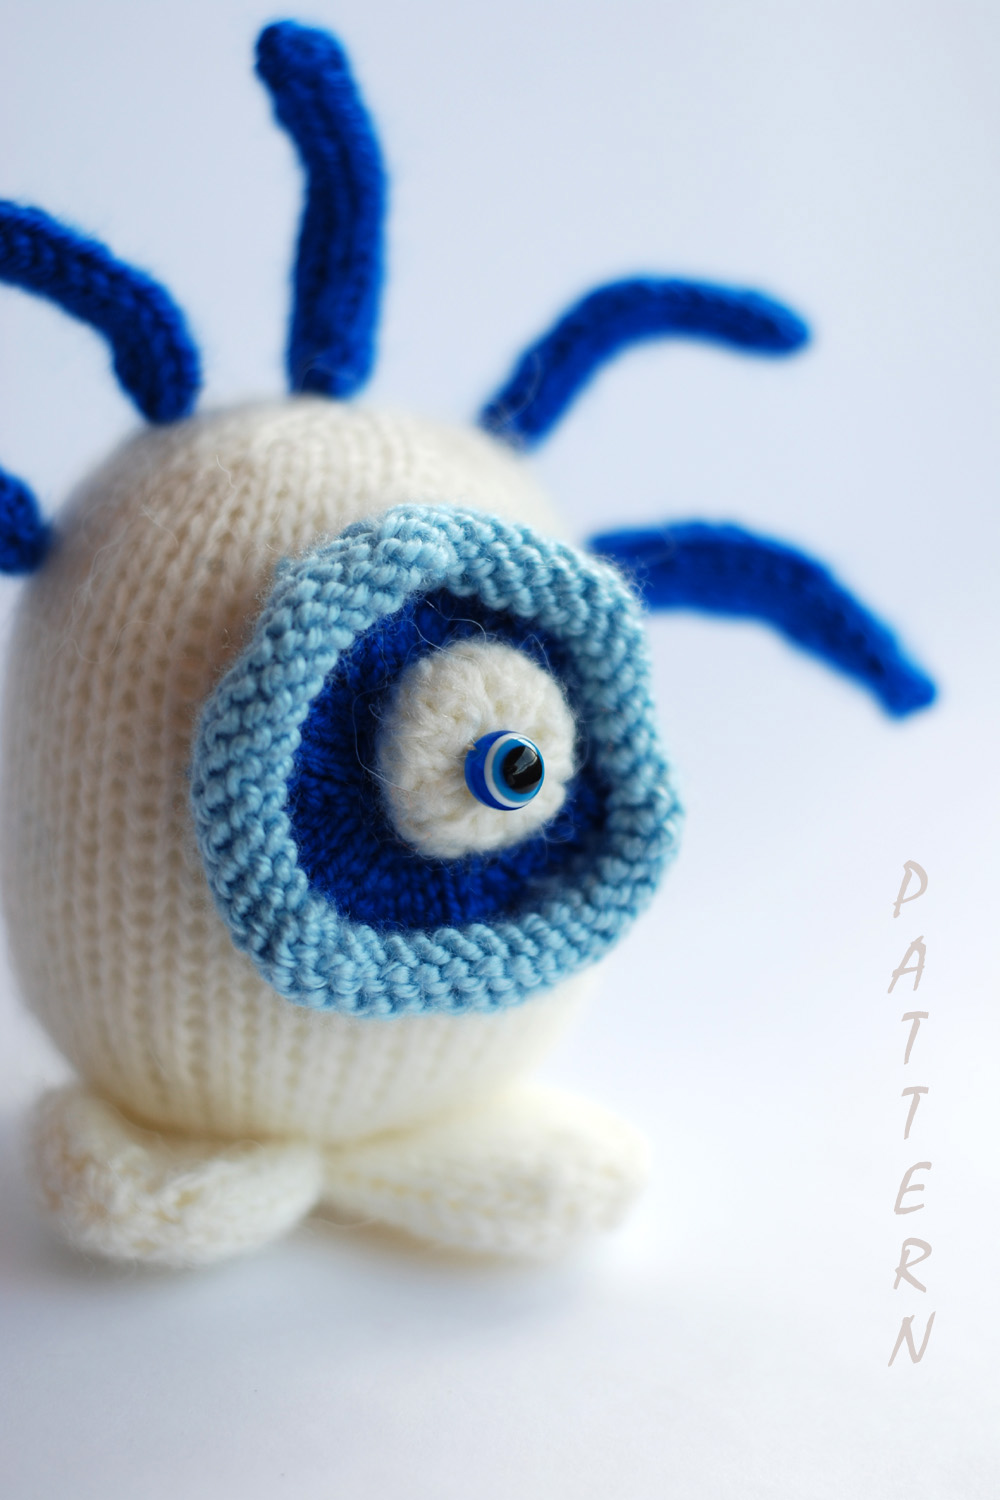 denizas knitted toys patterns blue eye sweet and funny